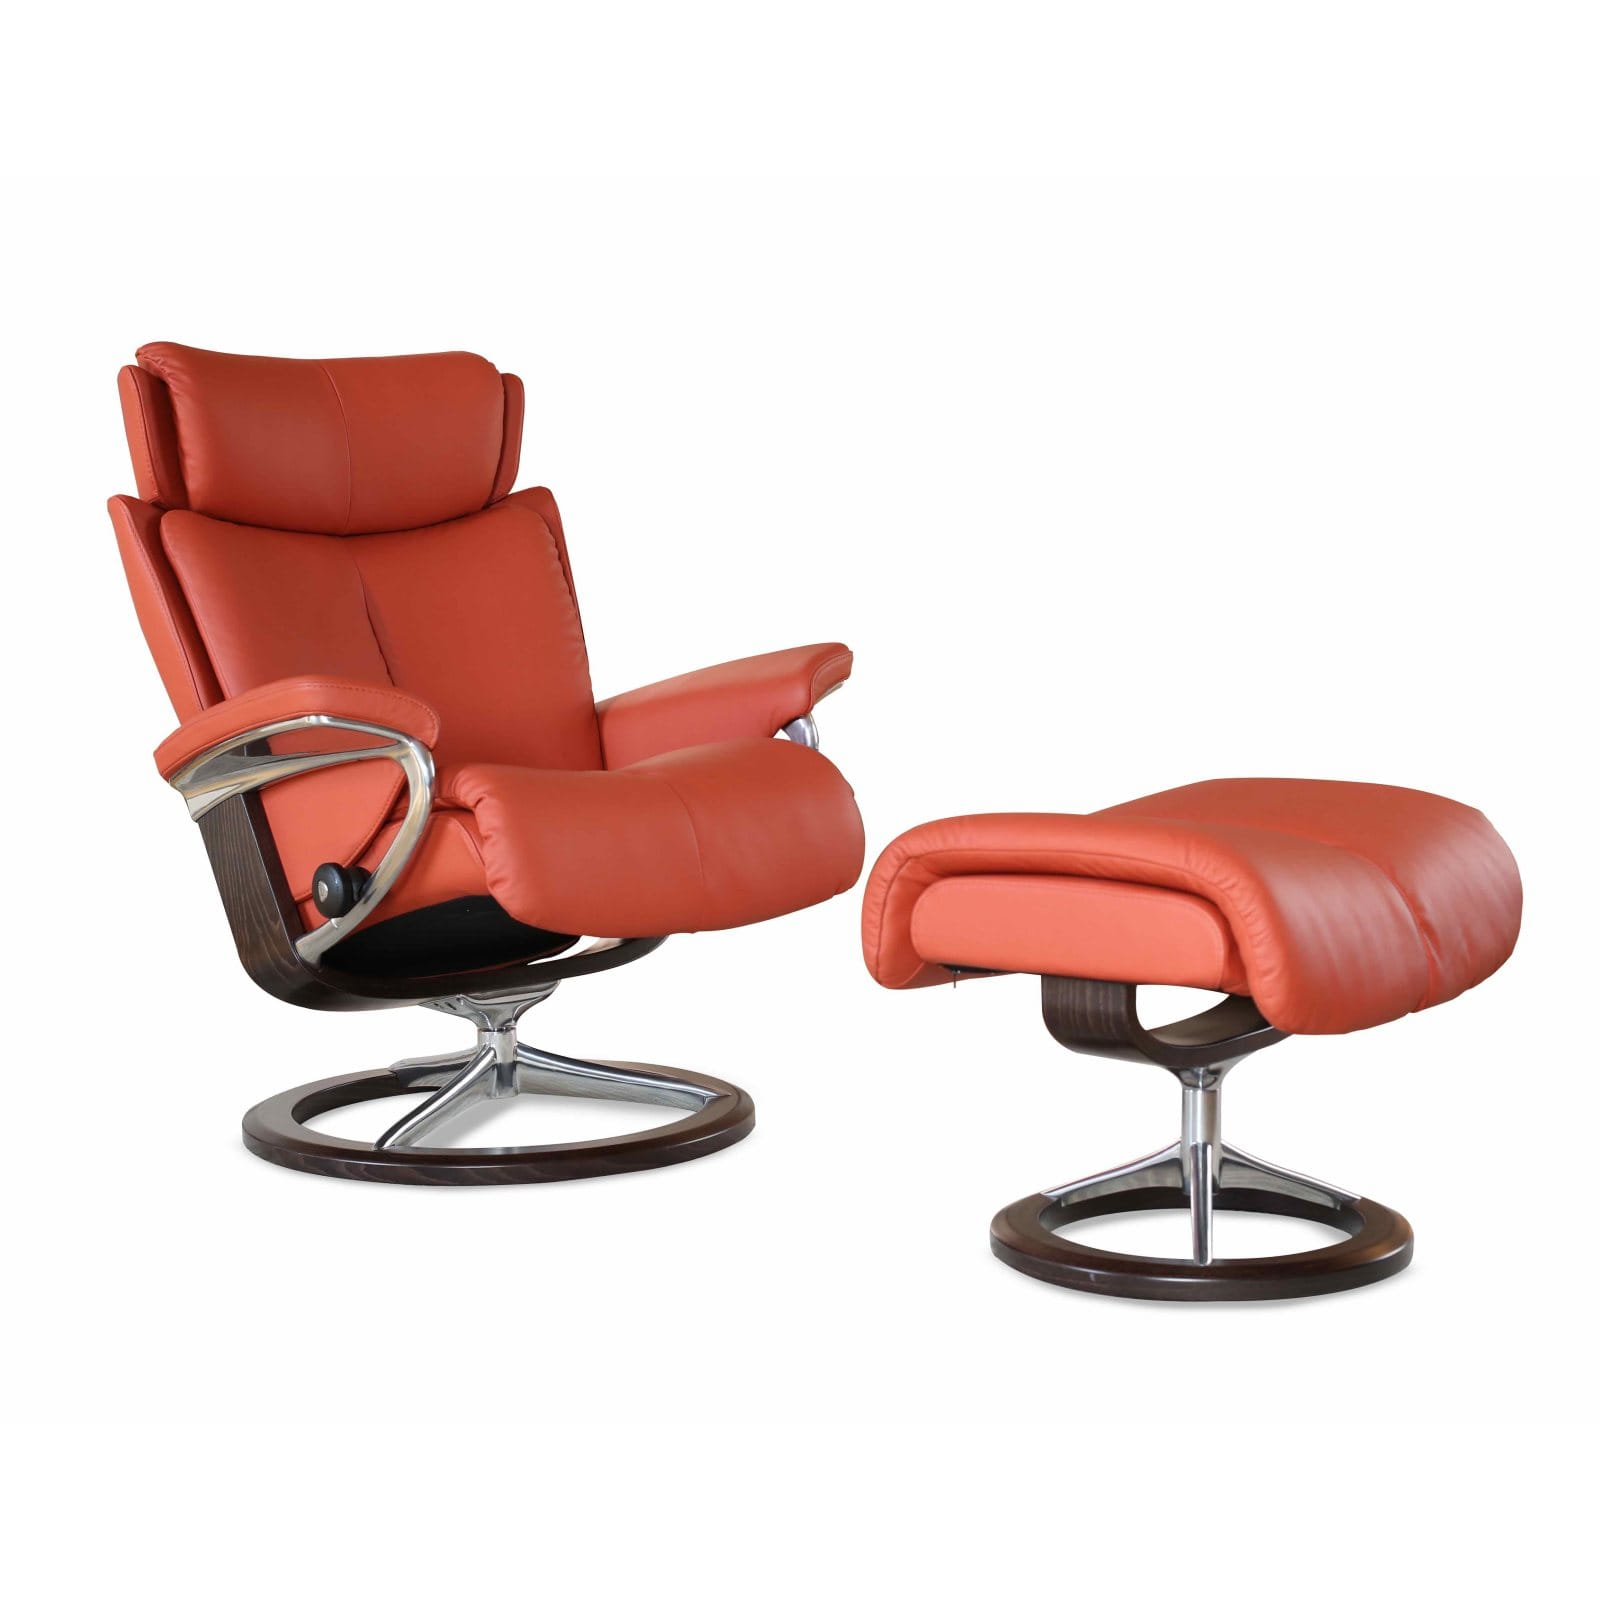 Stressless Magic Signature Sessel Stressless Sessel Magic Leder Paloma Henna Signature Gestell Braun Mit Hocker